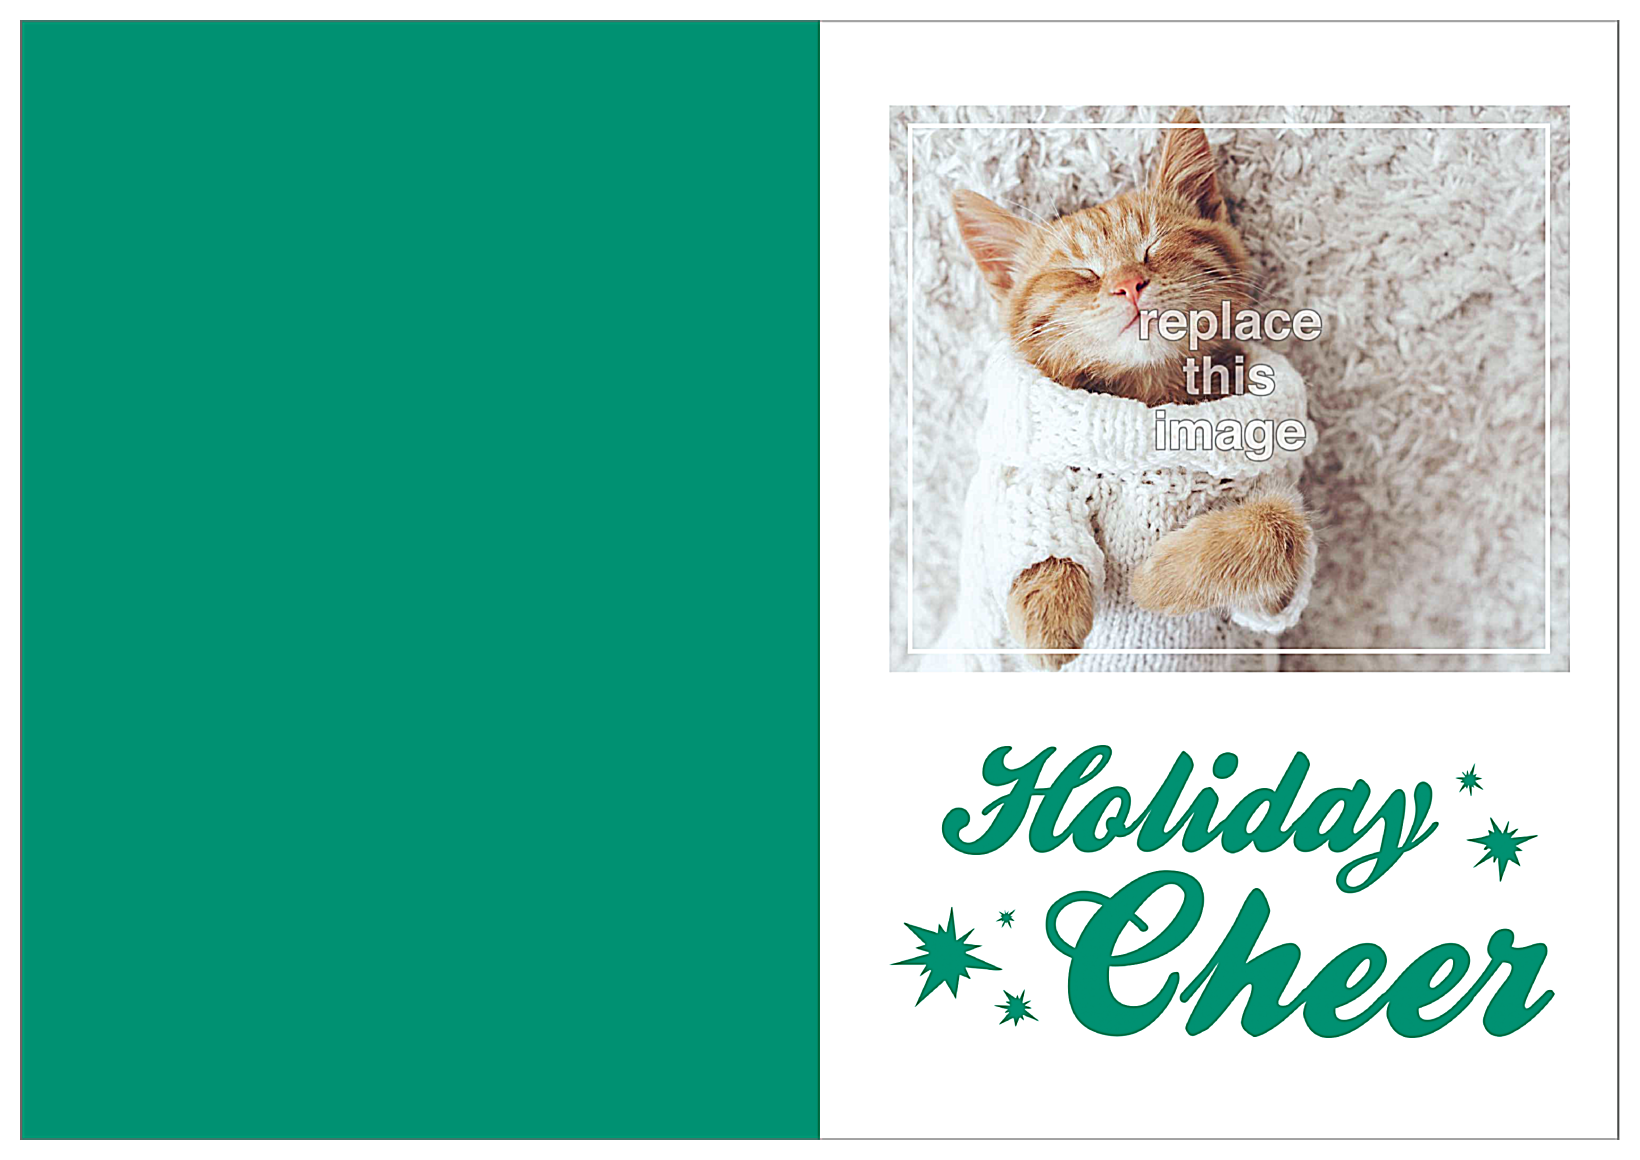 Comfort and Cheer front - Greeting Cards Maker